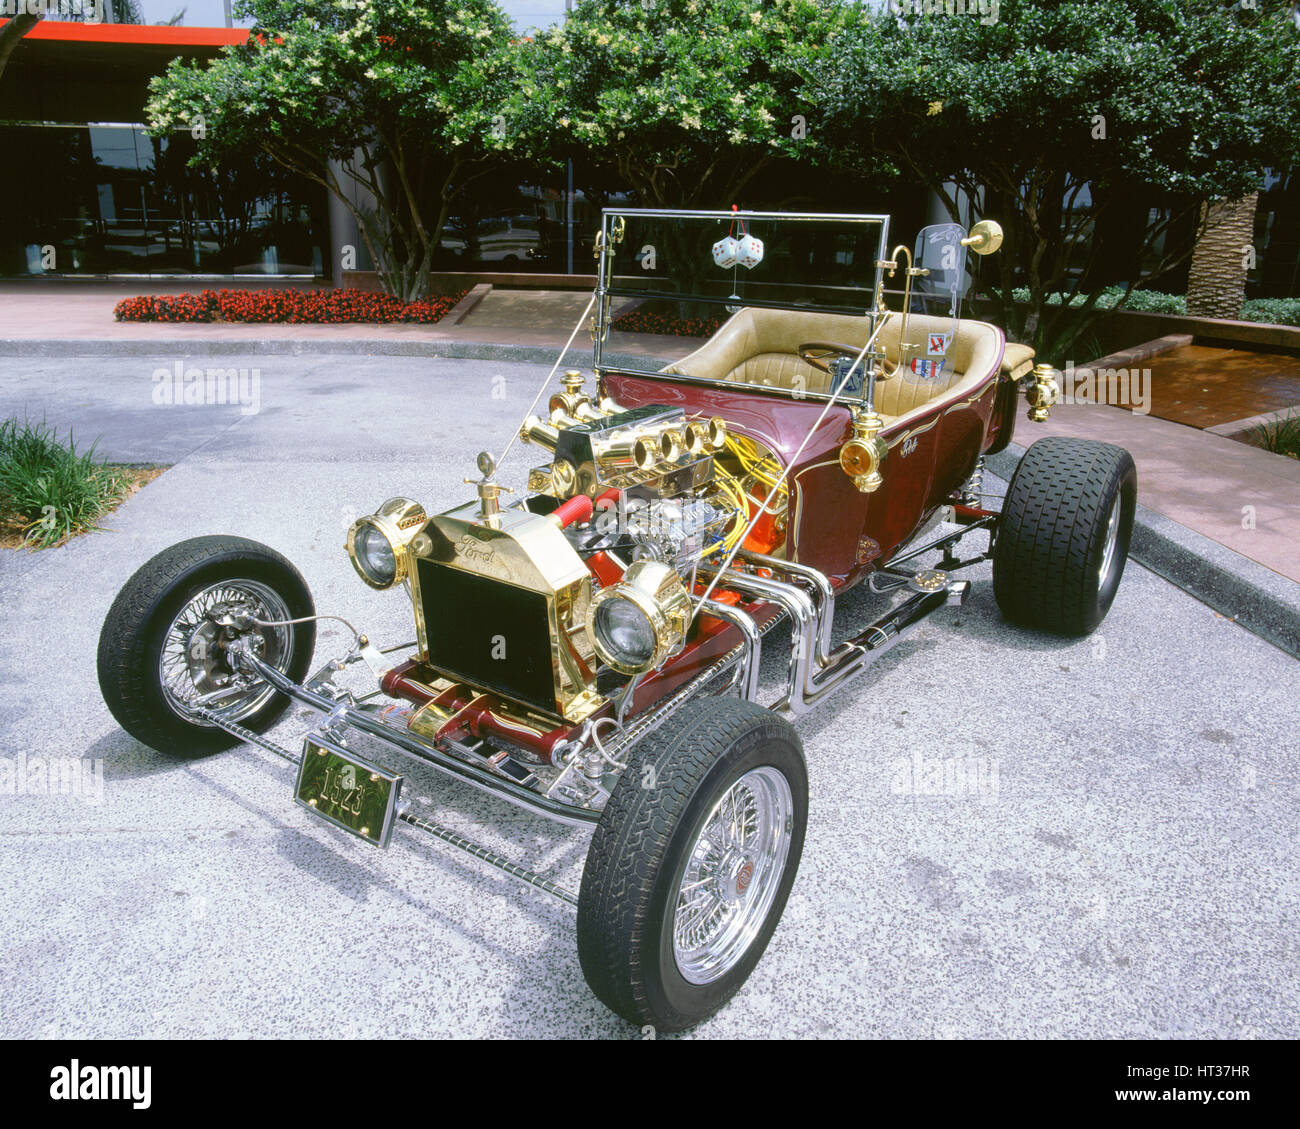 Model T Hot Rod Stock Photos & Model T Hot Rod Stock Images - Alamy